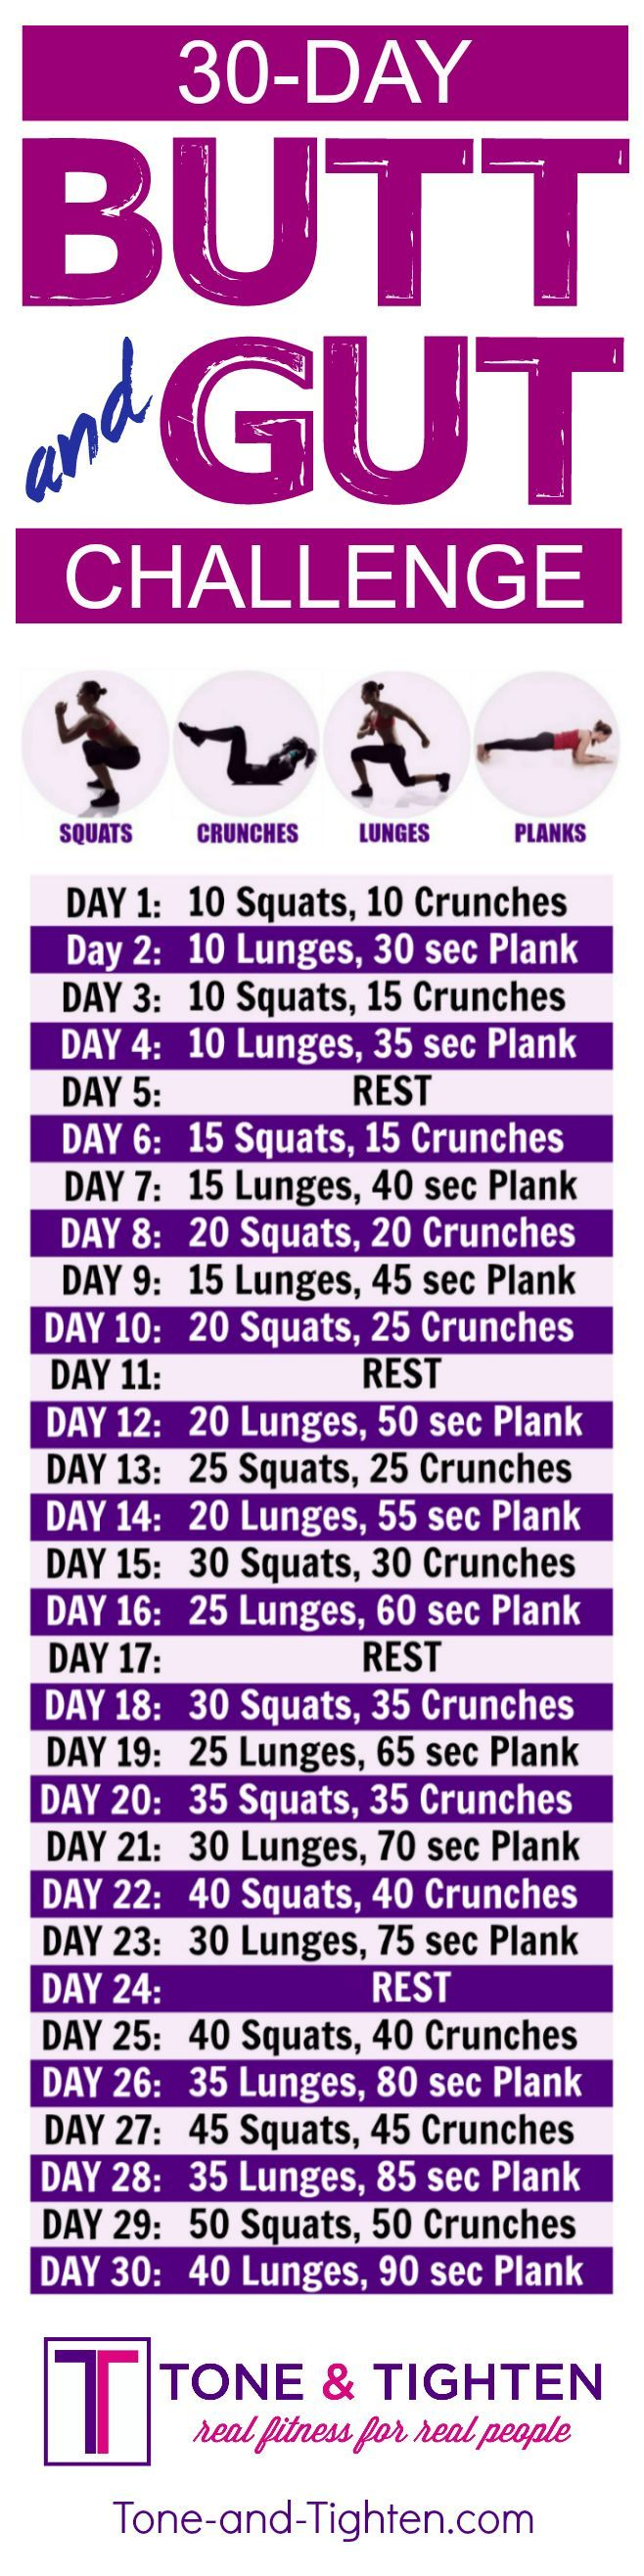 30 Day workout plan for your butt and abs | Tone and Tighten